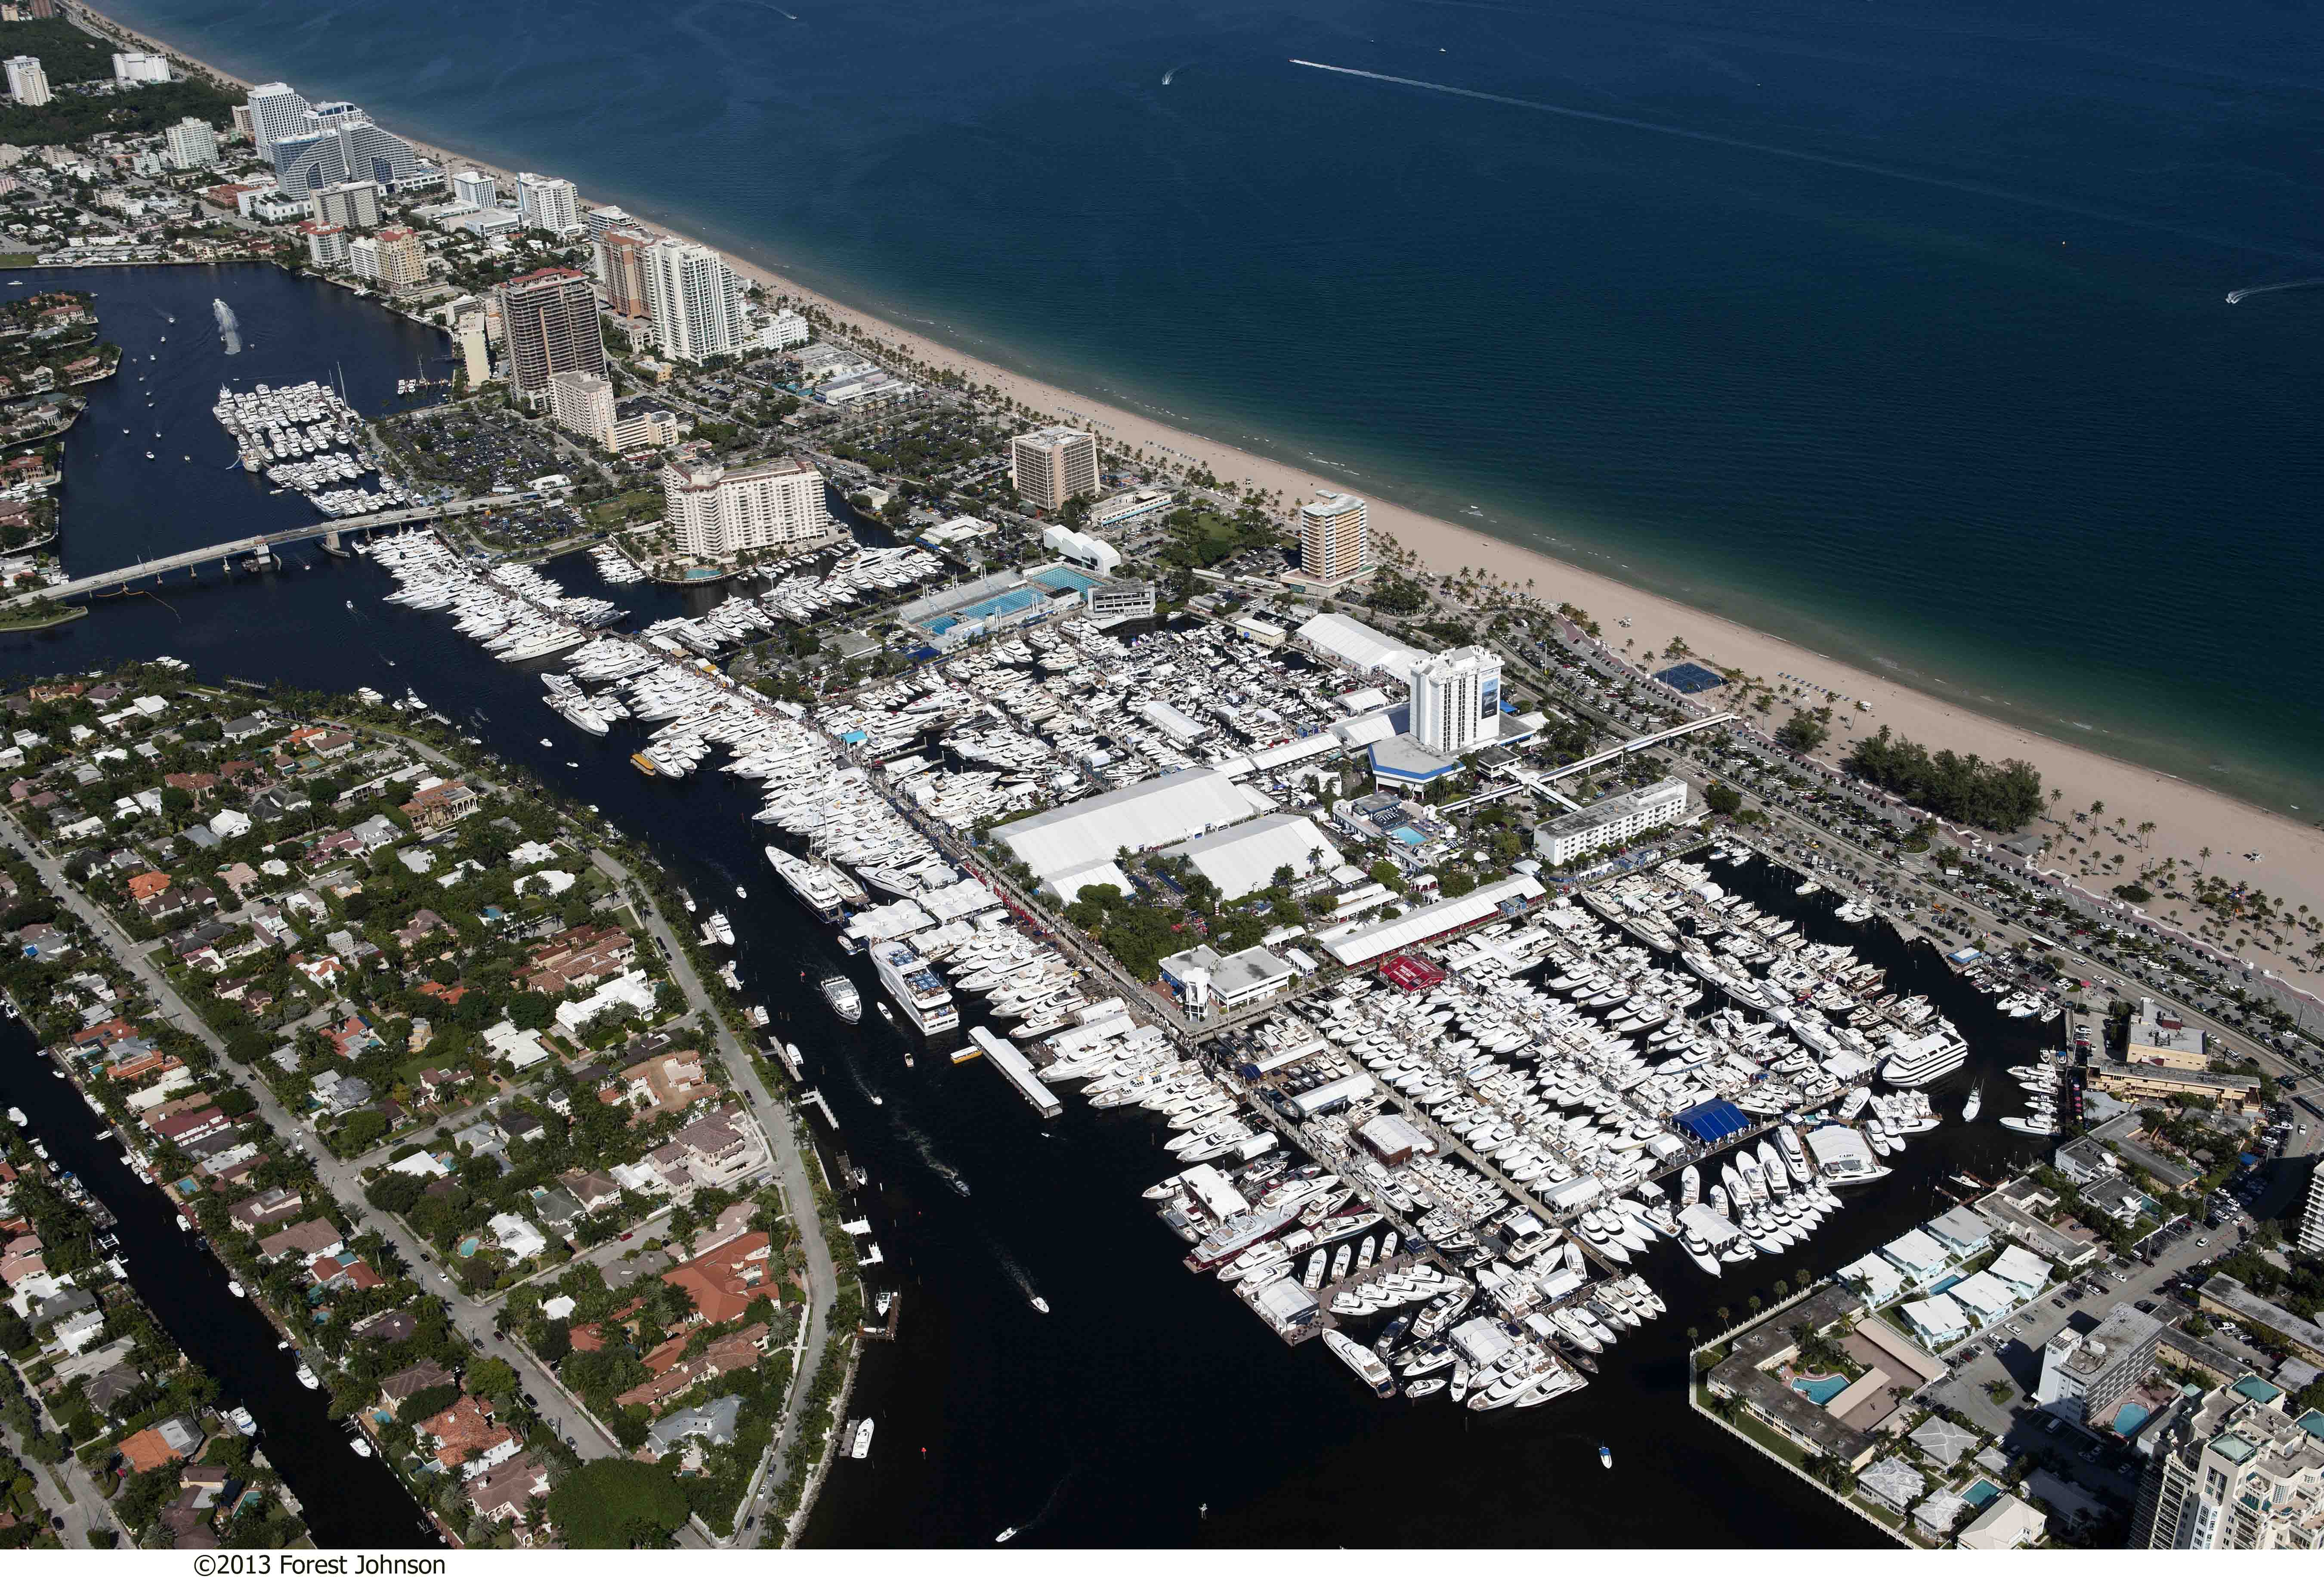 2013 Fort Lauderdale Boat Show